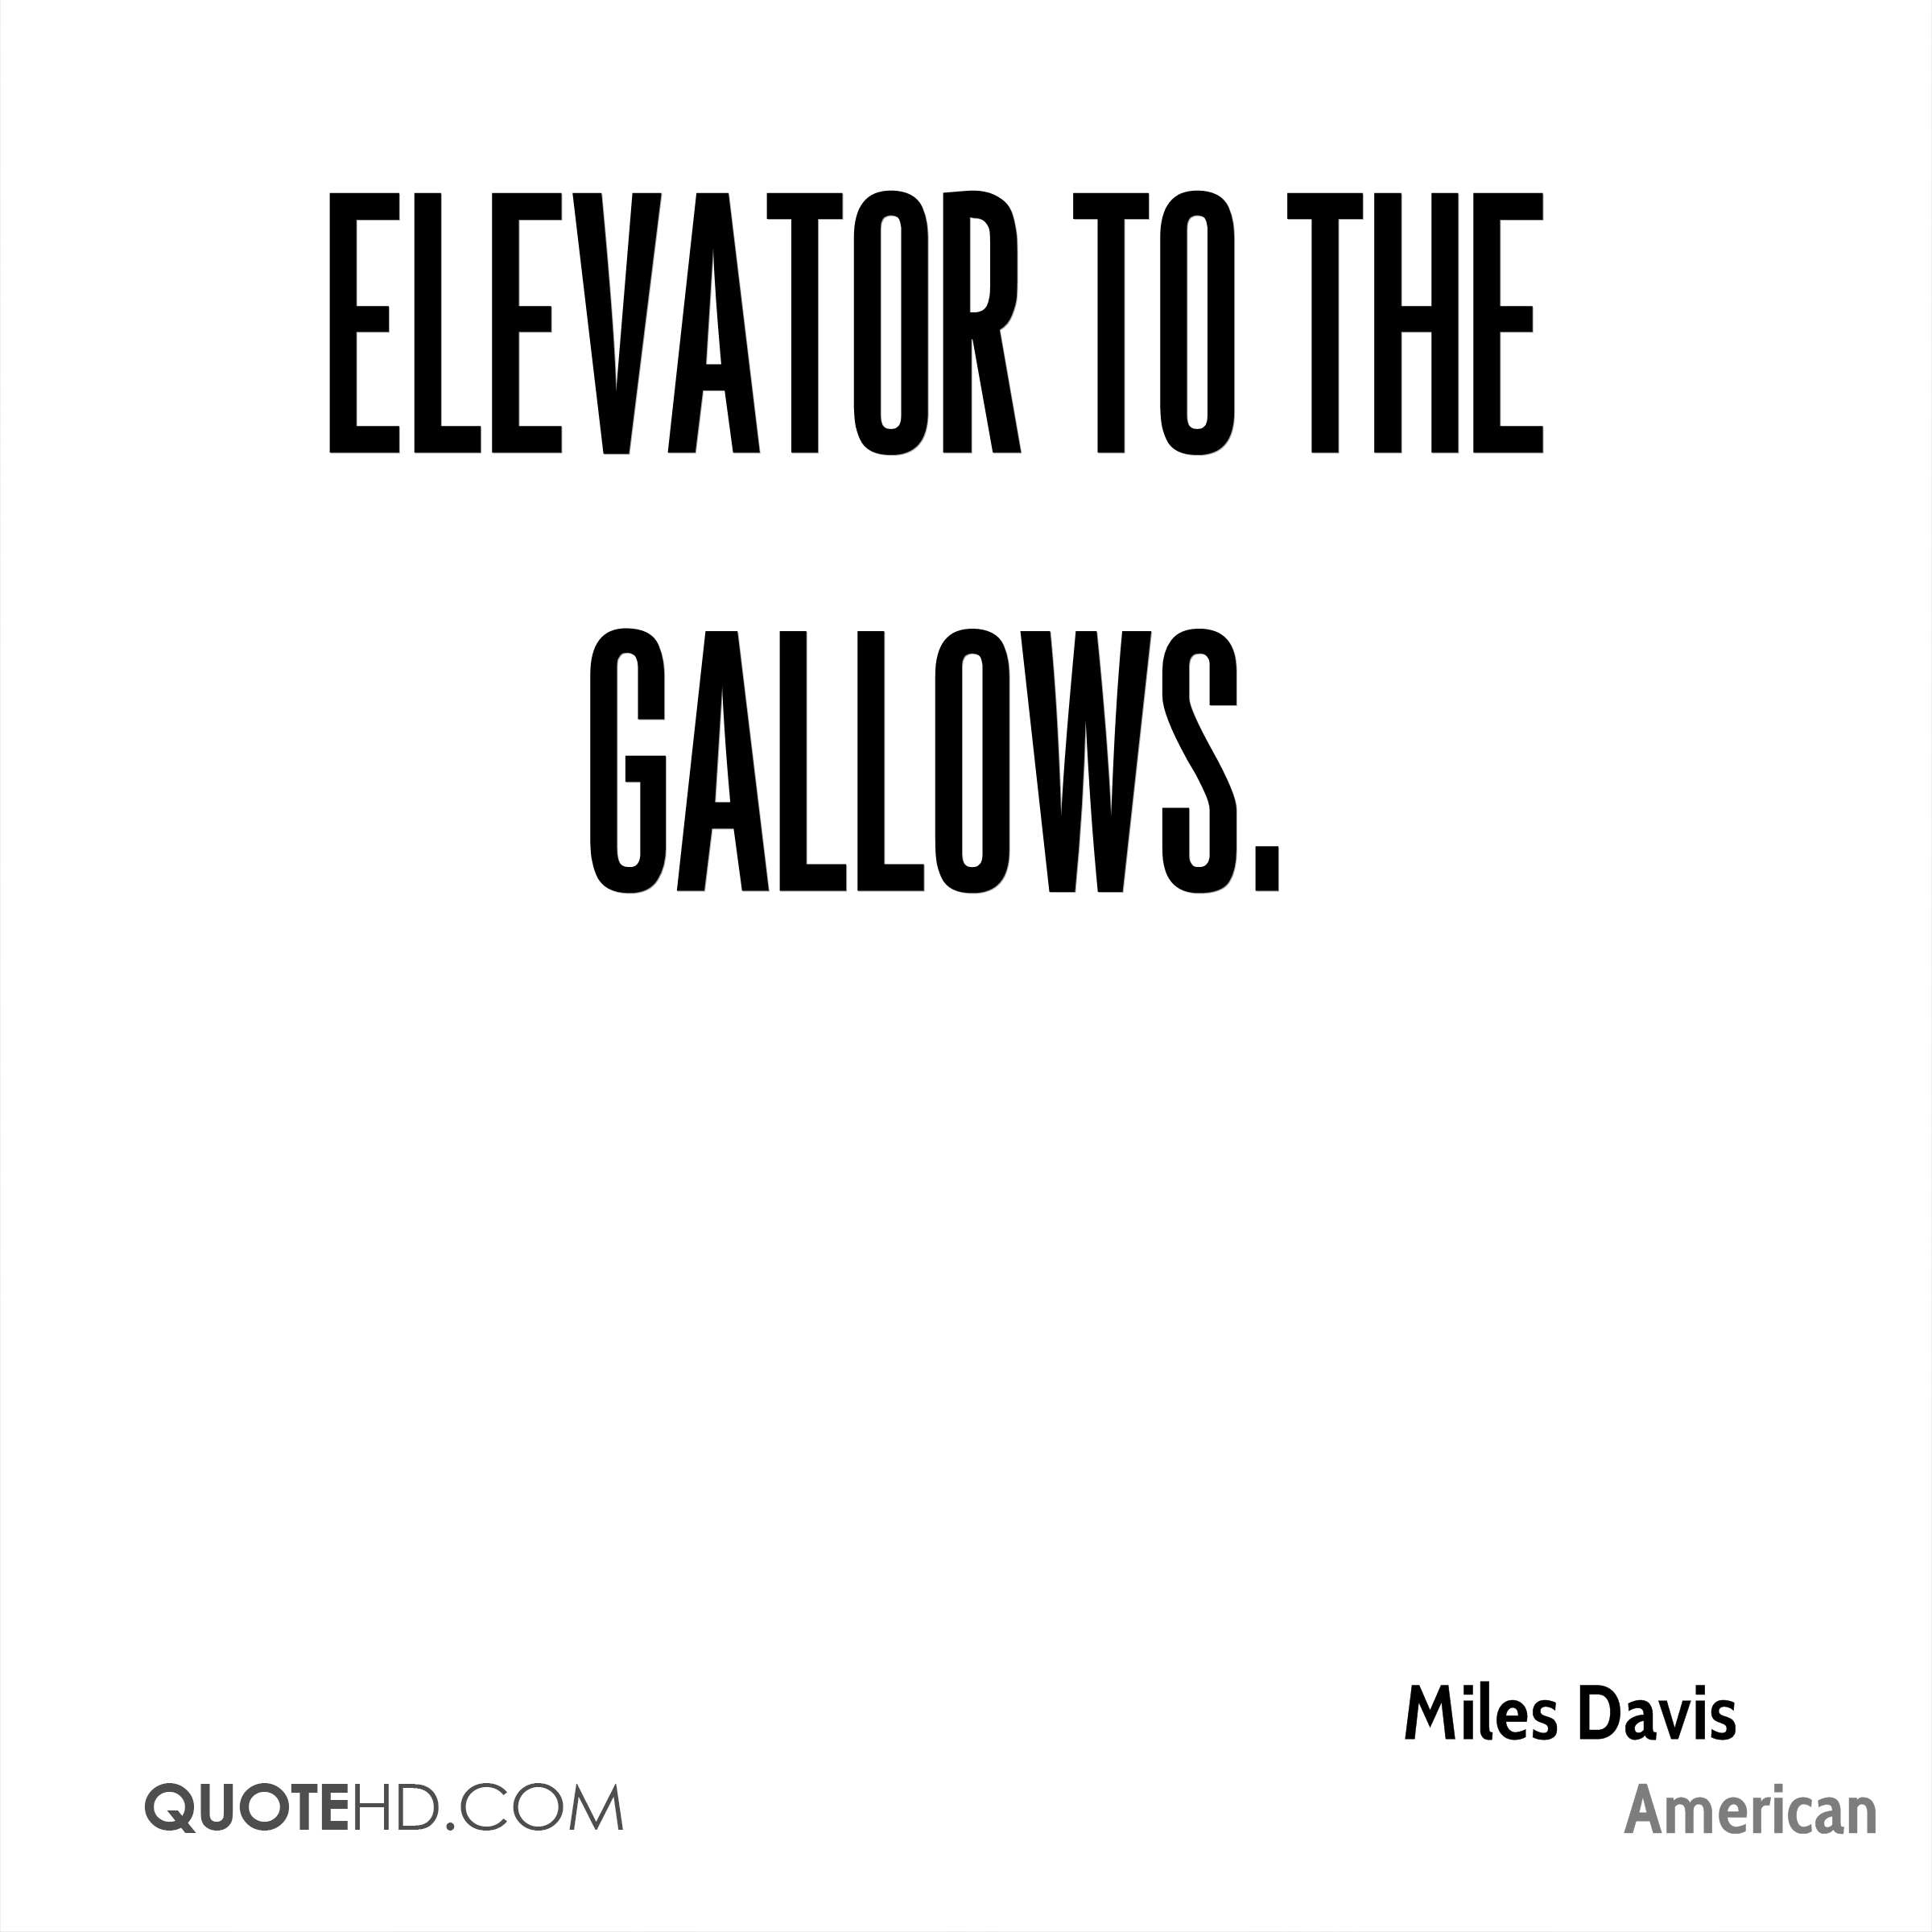 Elevator to the Gallows.